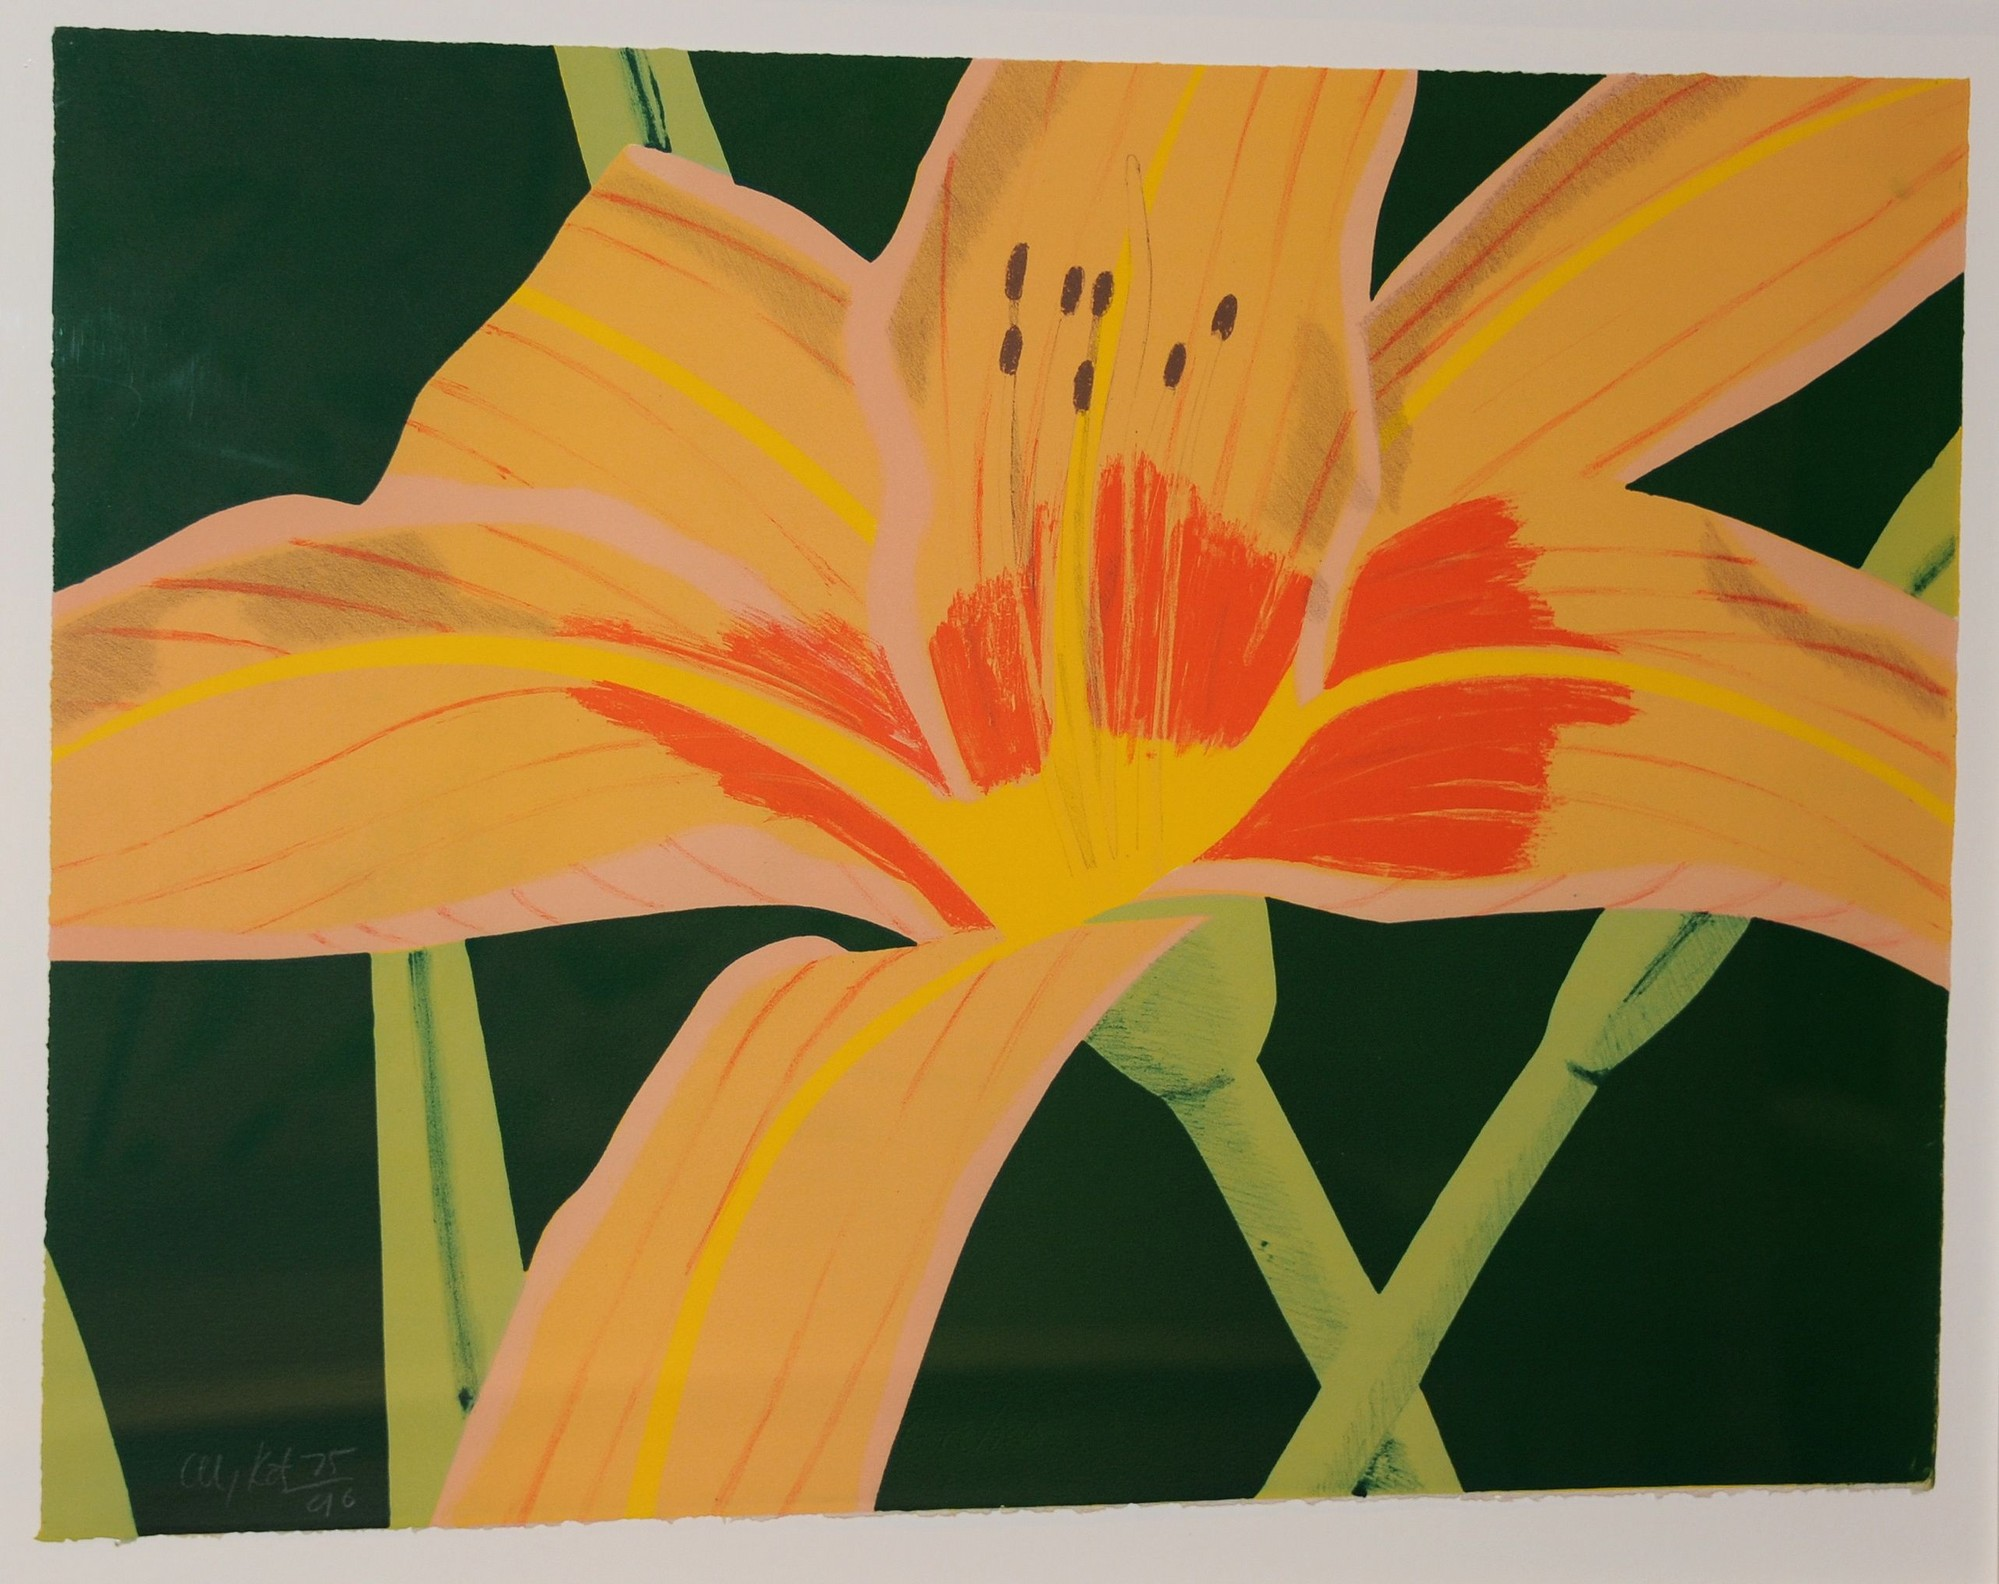 """Day Lily II"" is among the works by Alex Katz on view at Nassau County Museum of Art."